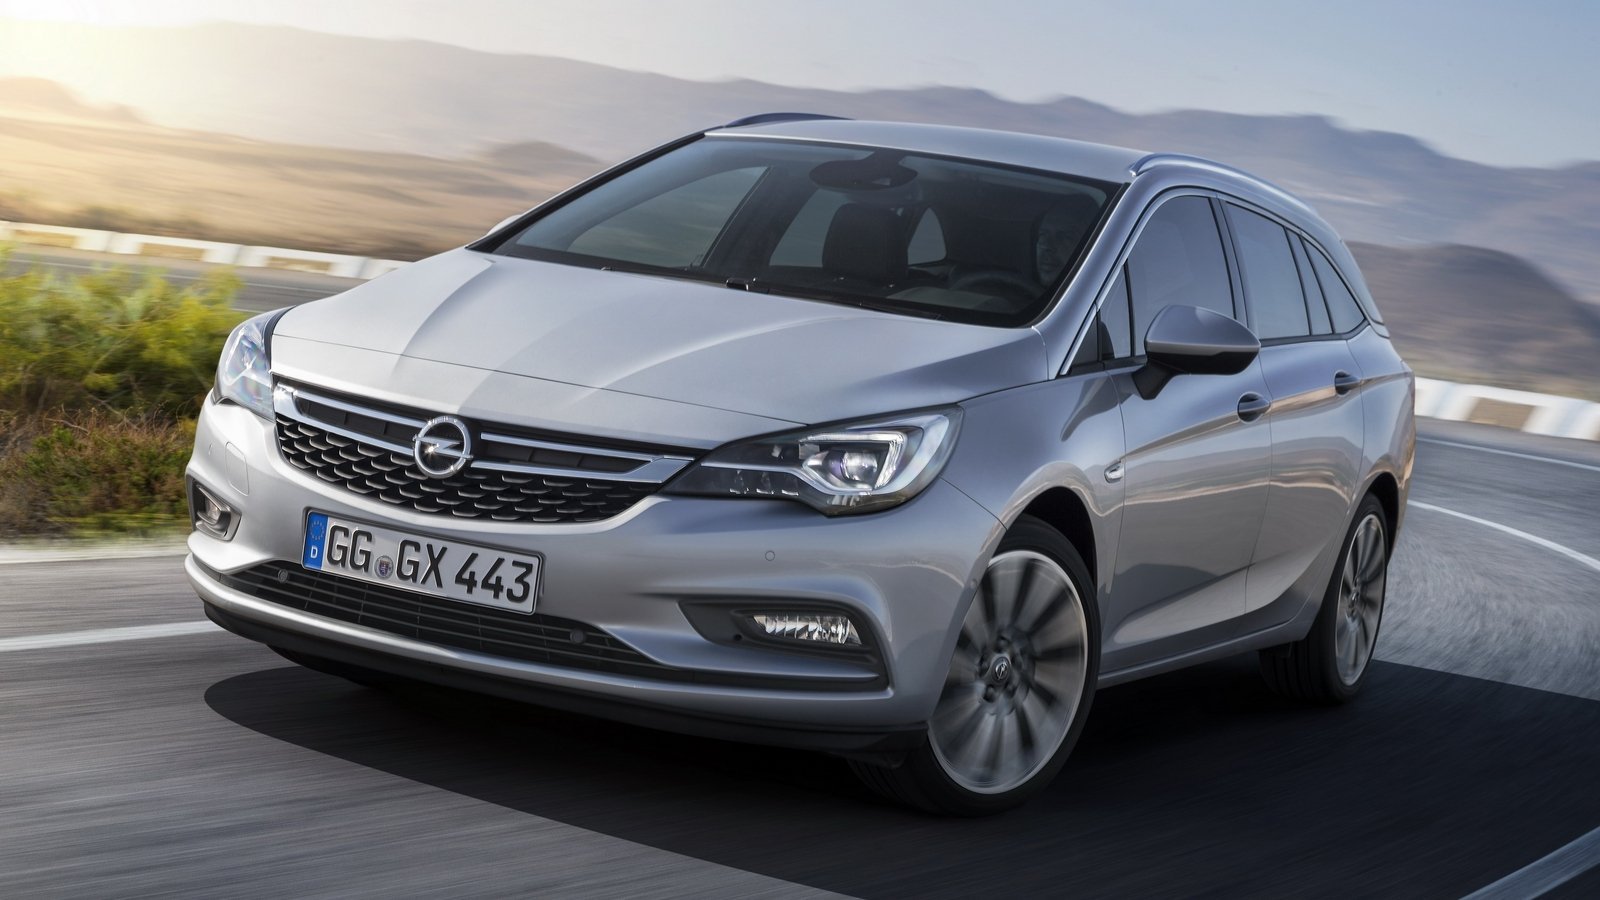 2017 Opel Astra Sports Tourer Pictures, Photos, Wallpapers ...